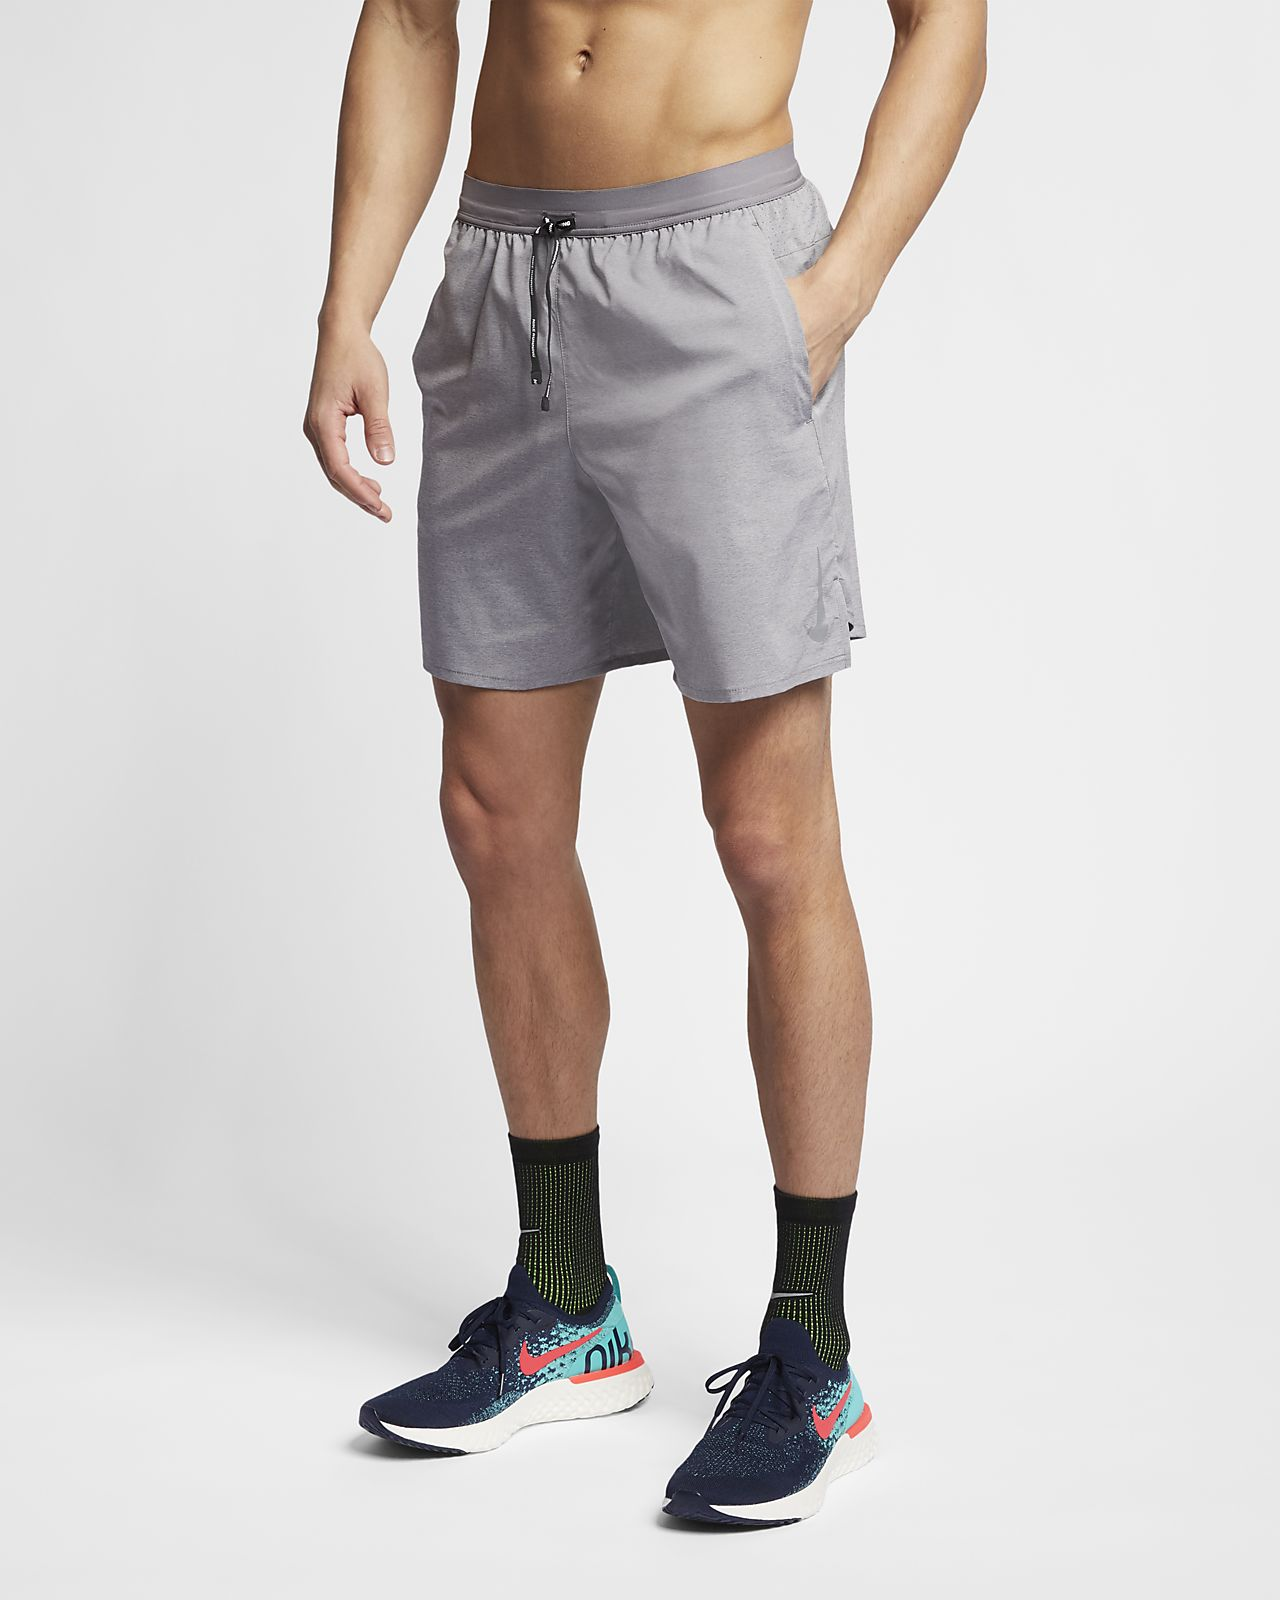 Nike Dri-FIT Flex Stride Men's 18cm (approx.) 2-in-1 Running Shorts